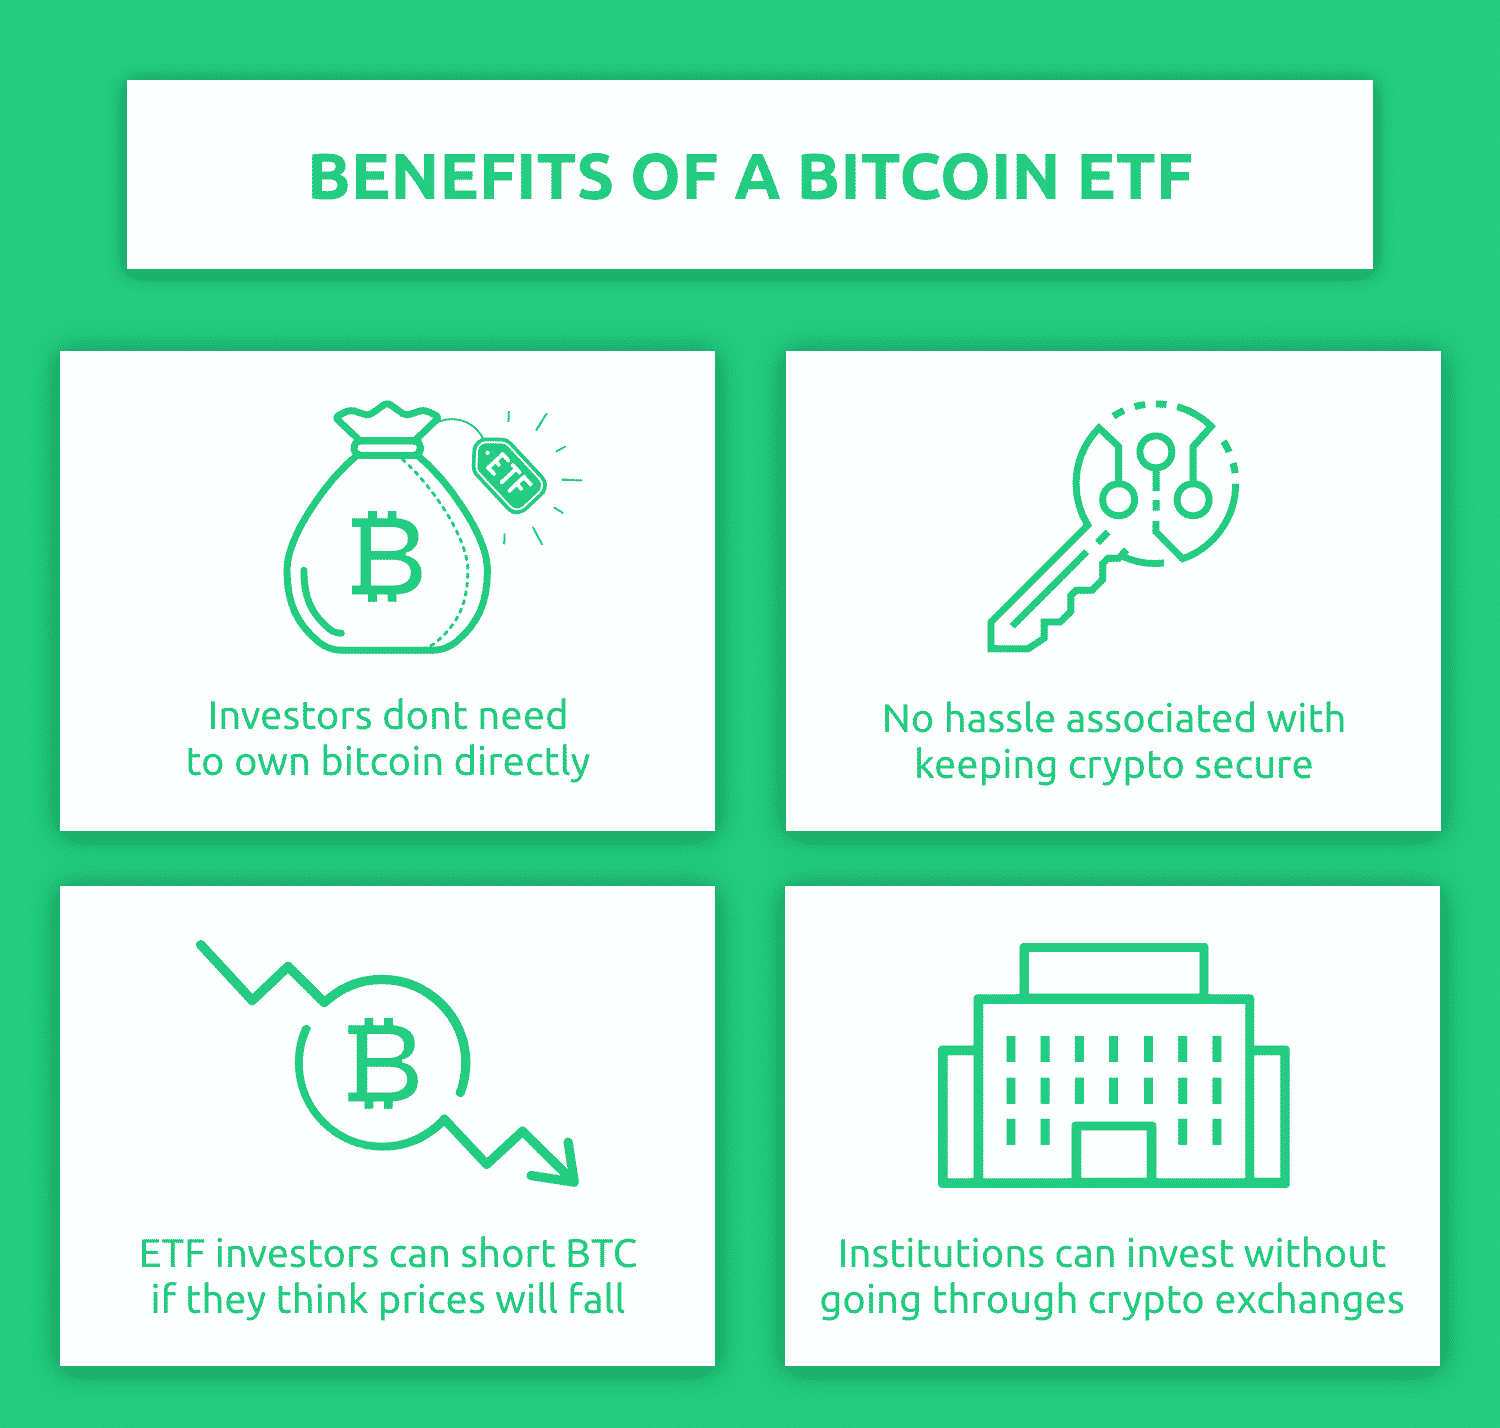 What are the main reasons for investing in crypto ETFs?